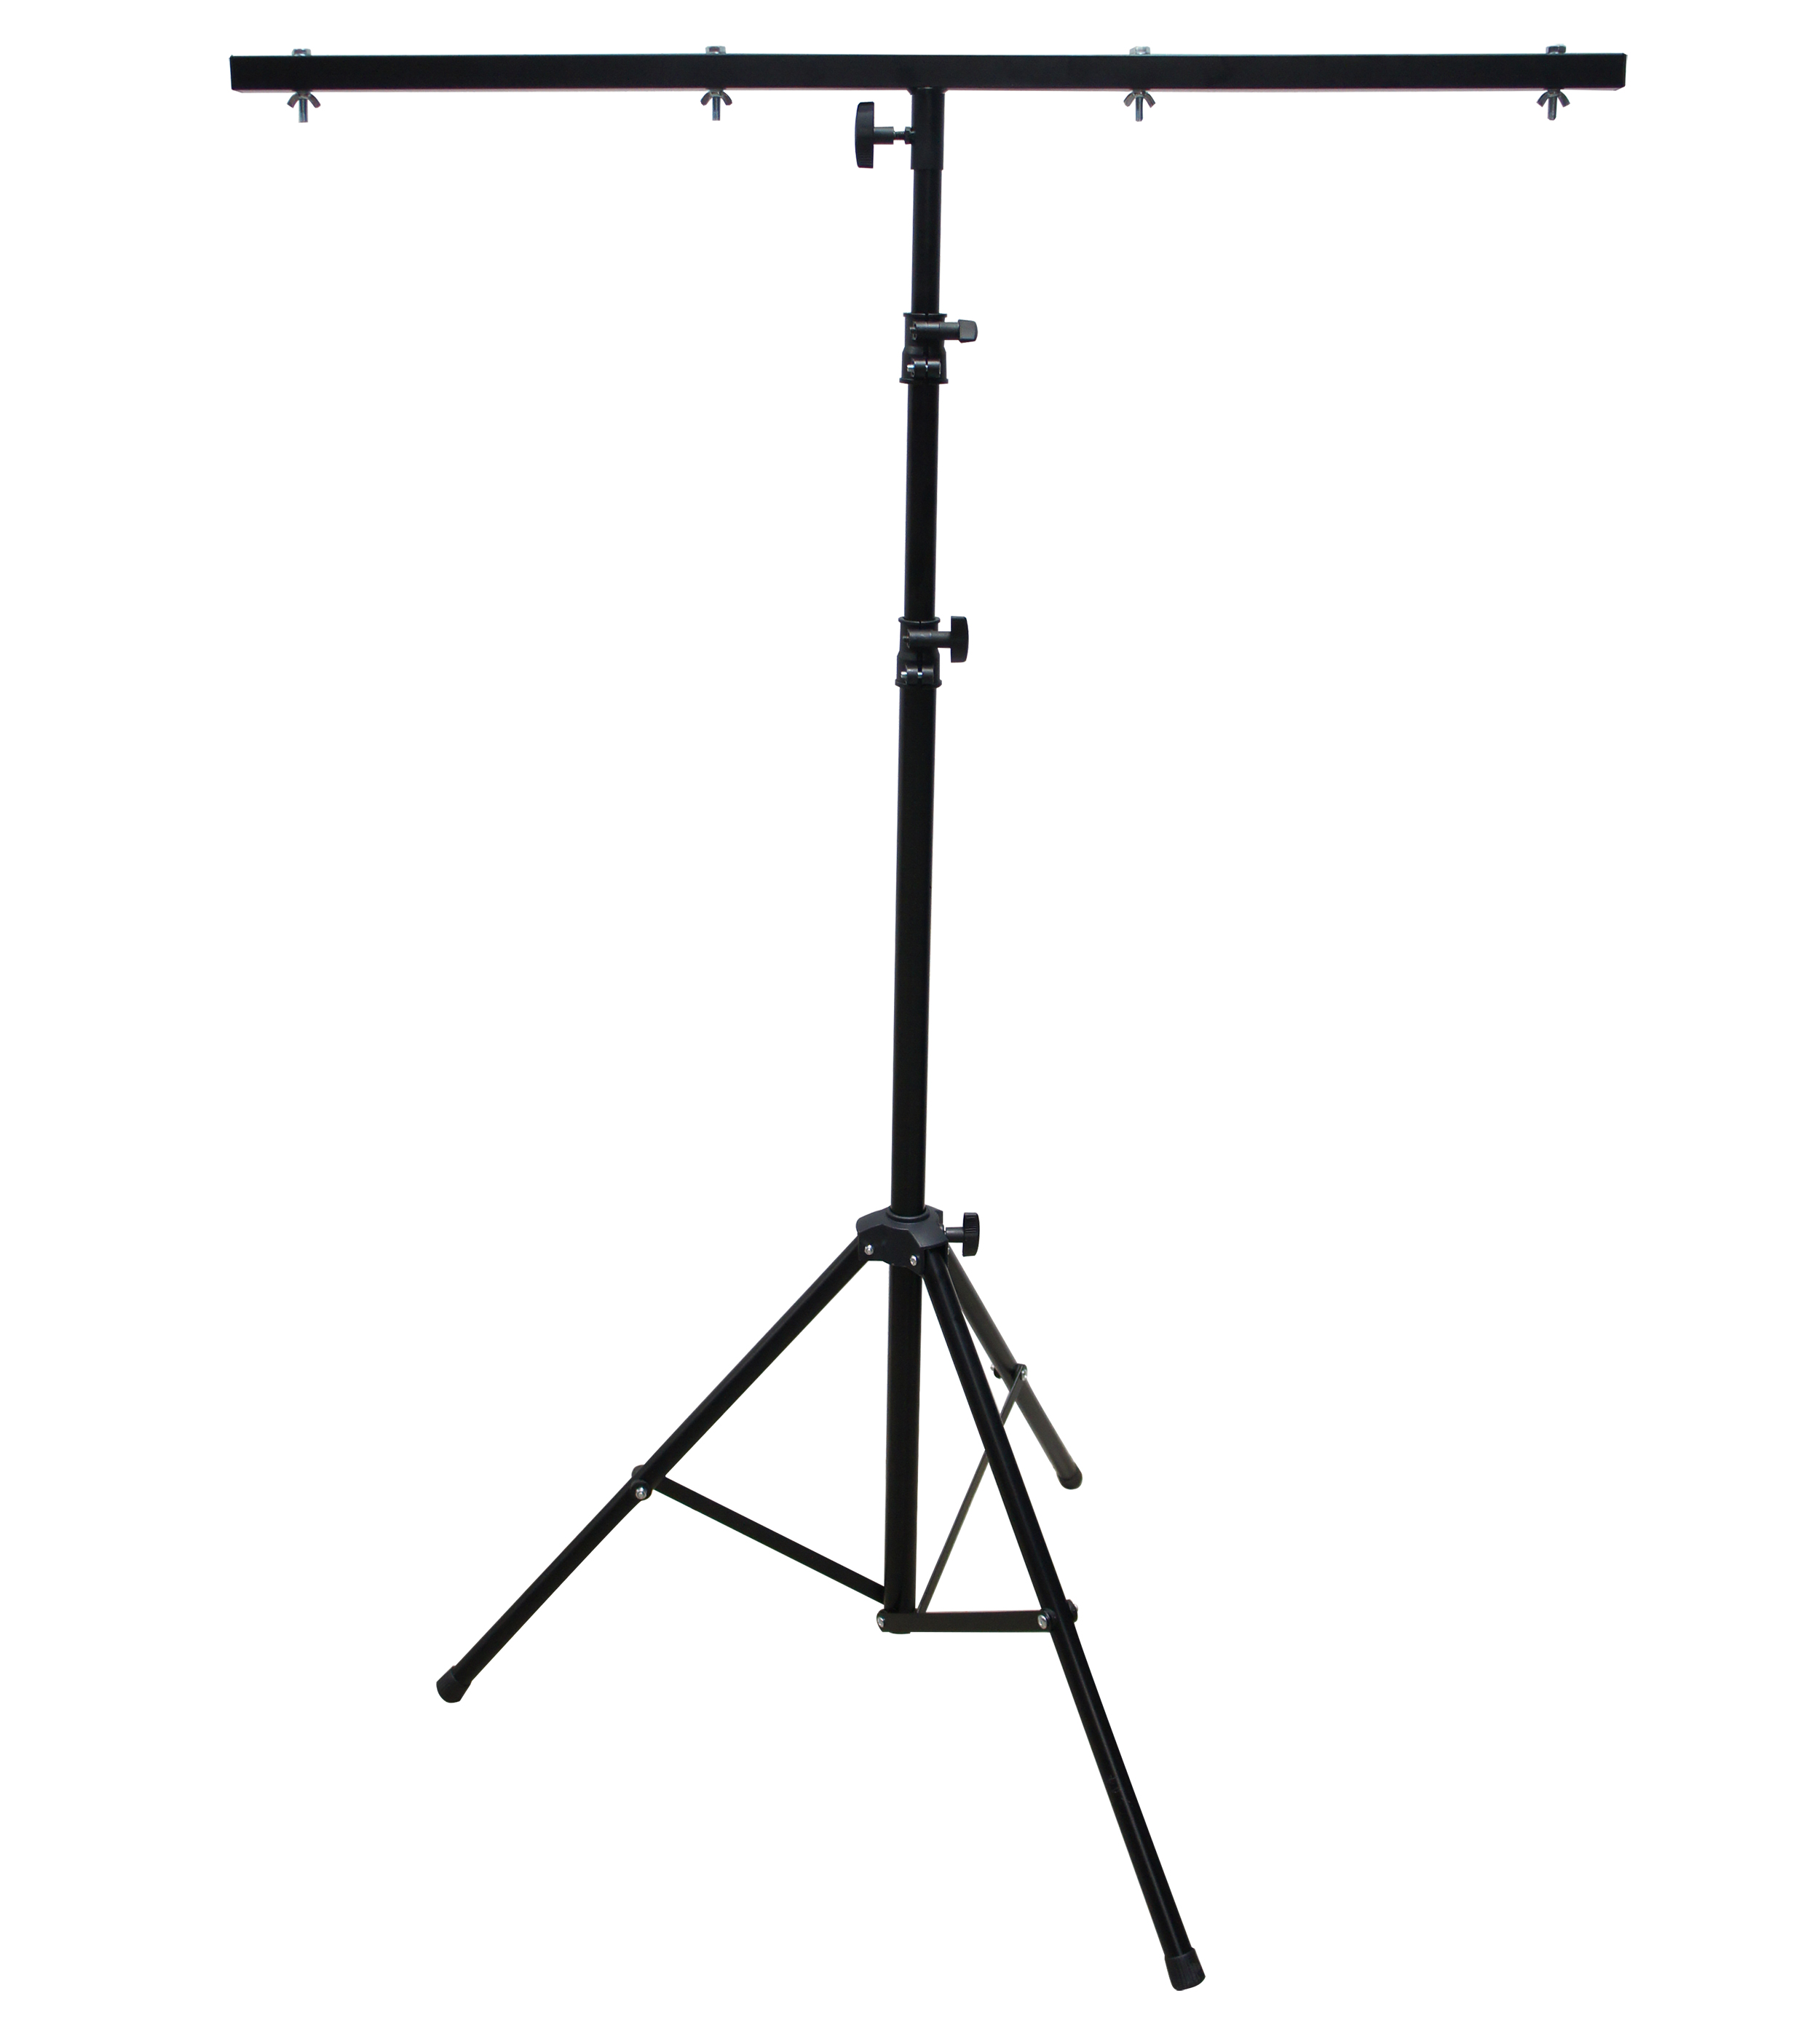 Harmony Audio Ha Tbarstand Pro Dj Lighting Tripod Amp T Bar